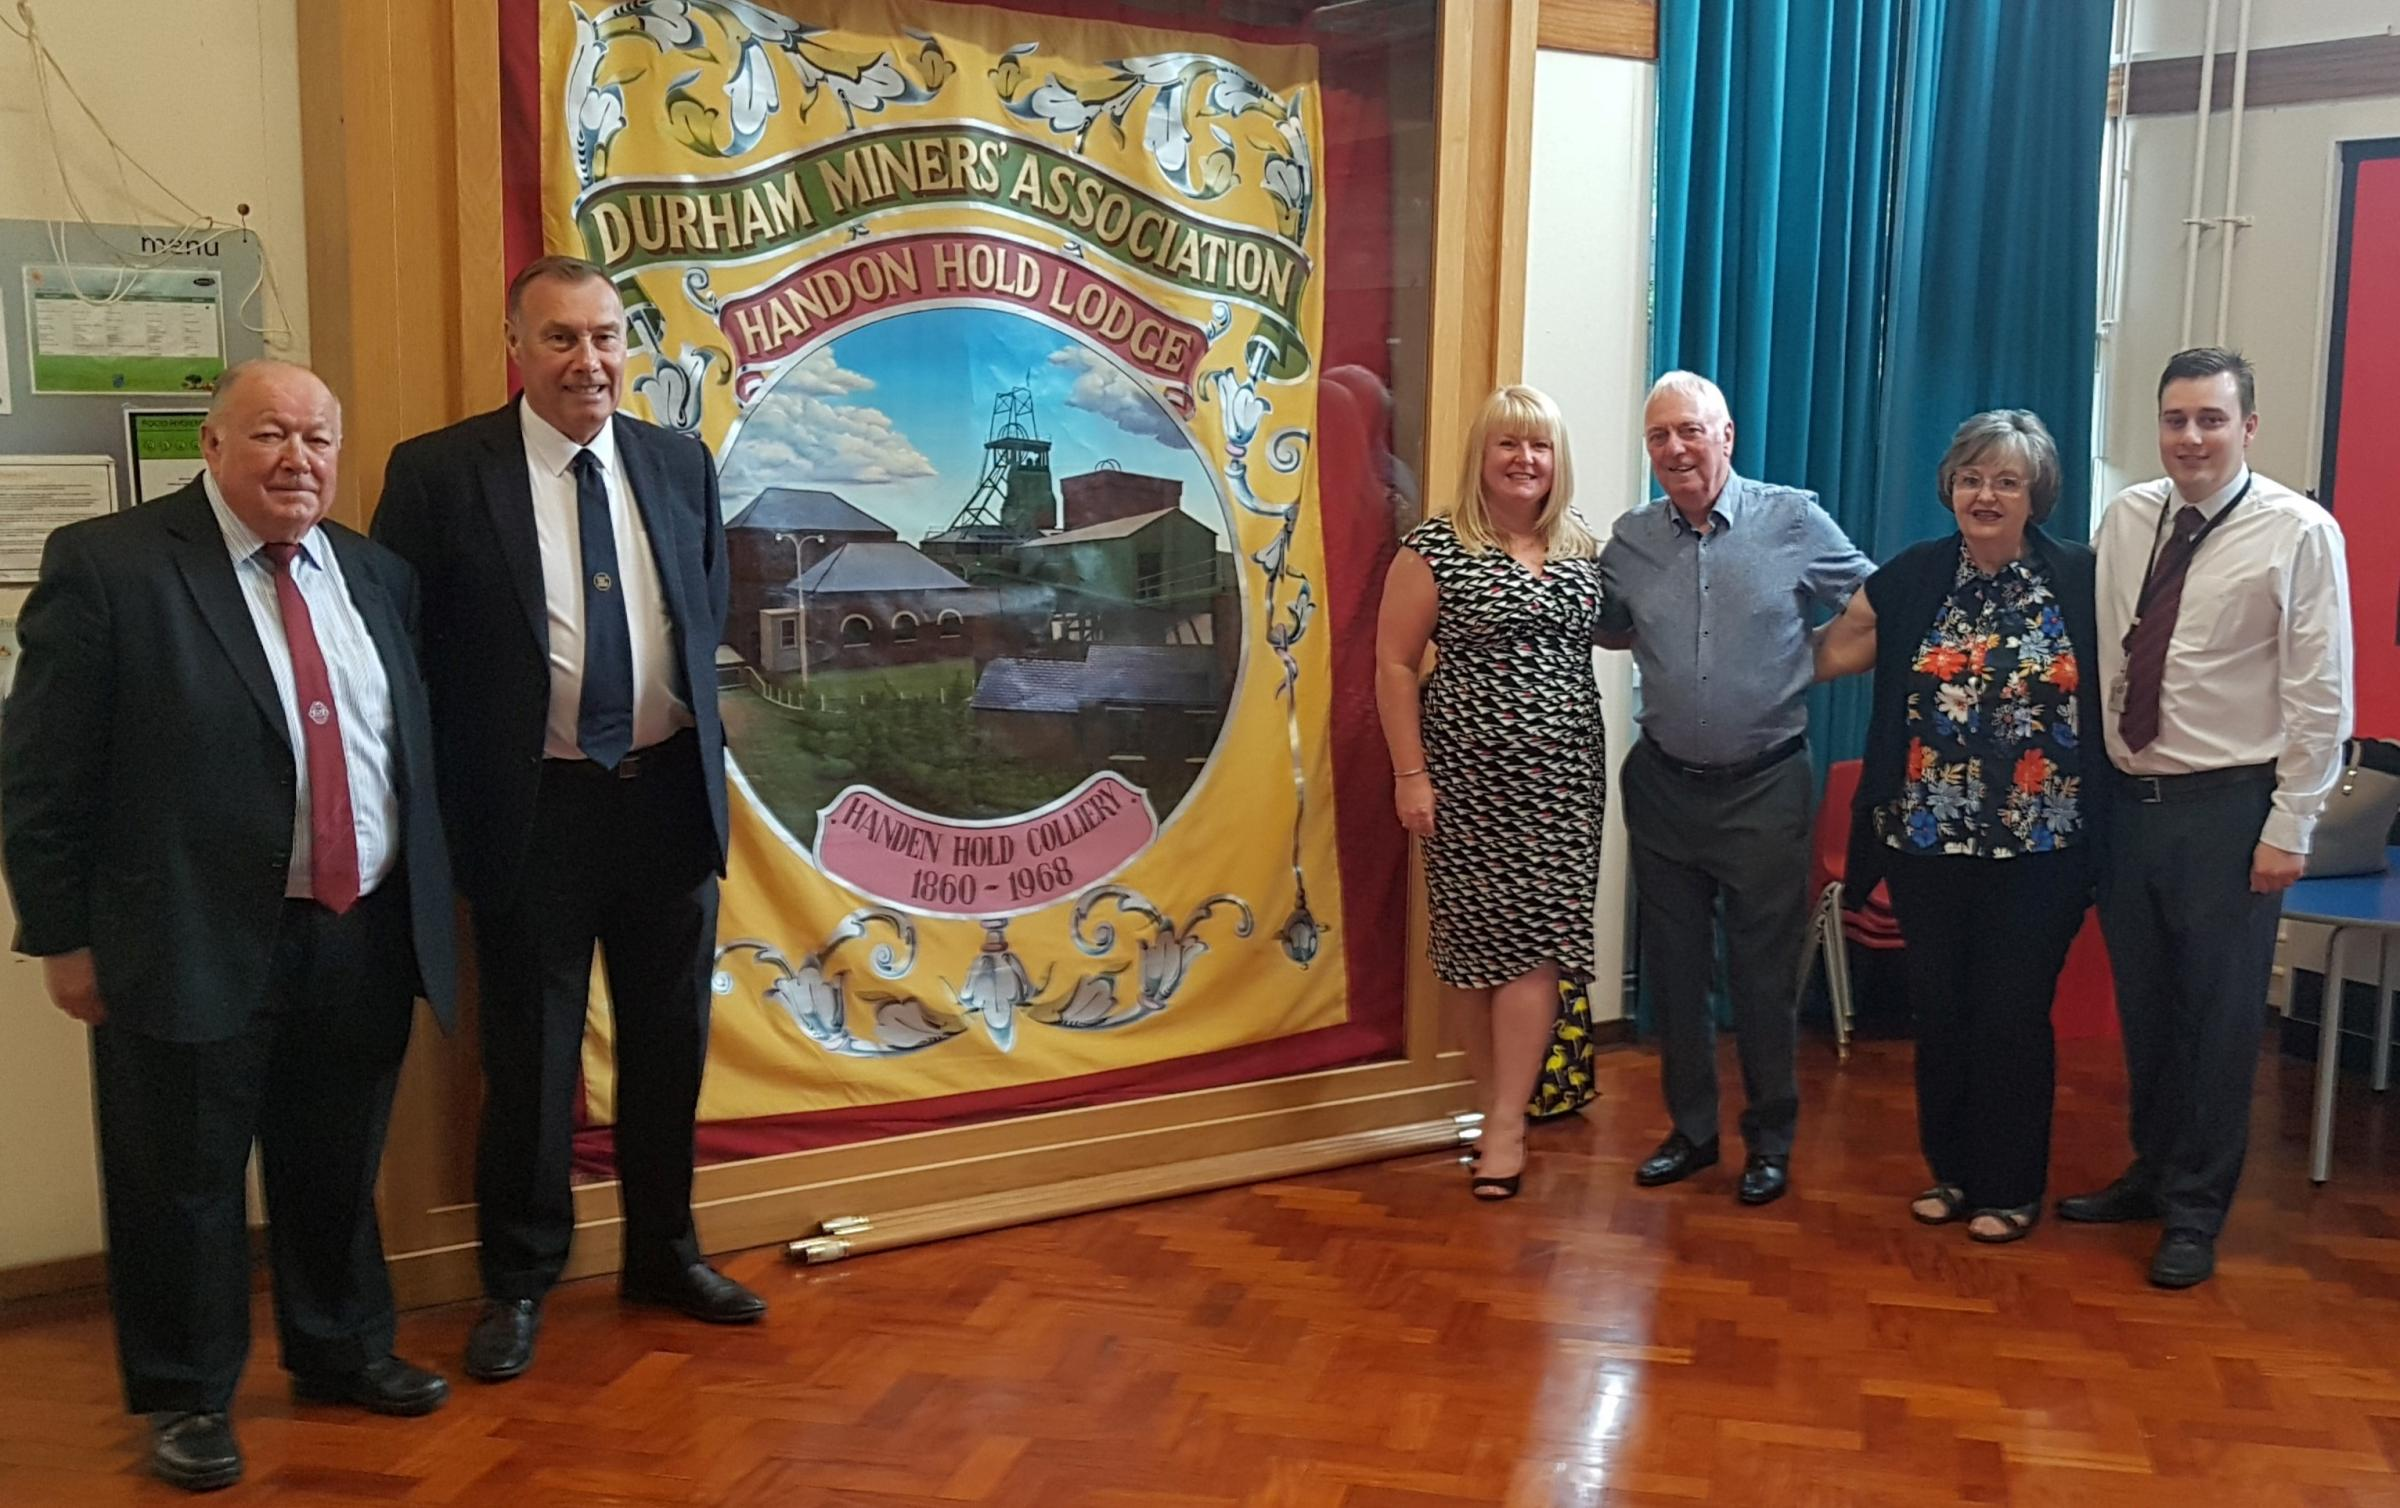 BANNER: Pictured, from left, are Lawrence Claughan, Joe Whitworth, Durham Councillor Alison Batey, Bill Barrett, Jean Ainsworth and Durham County Councillor Danny Wood.